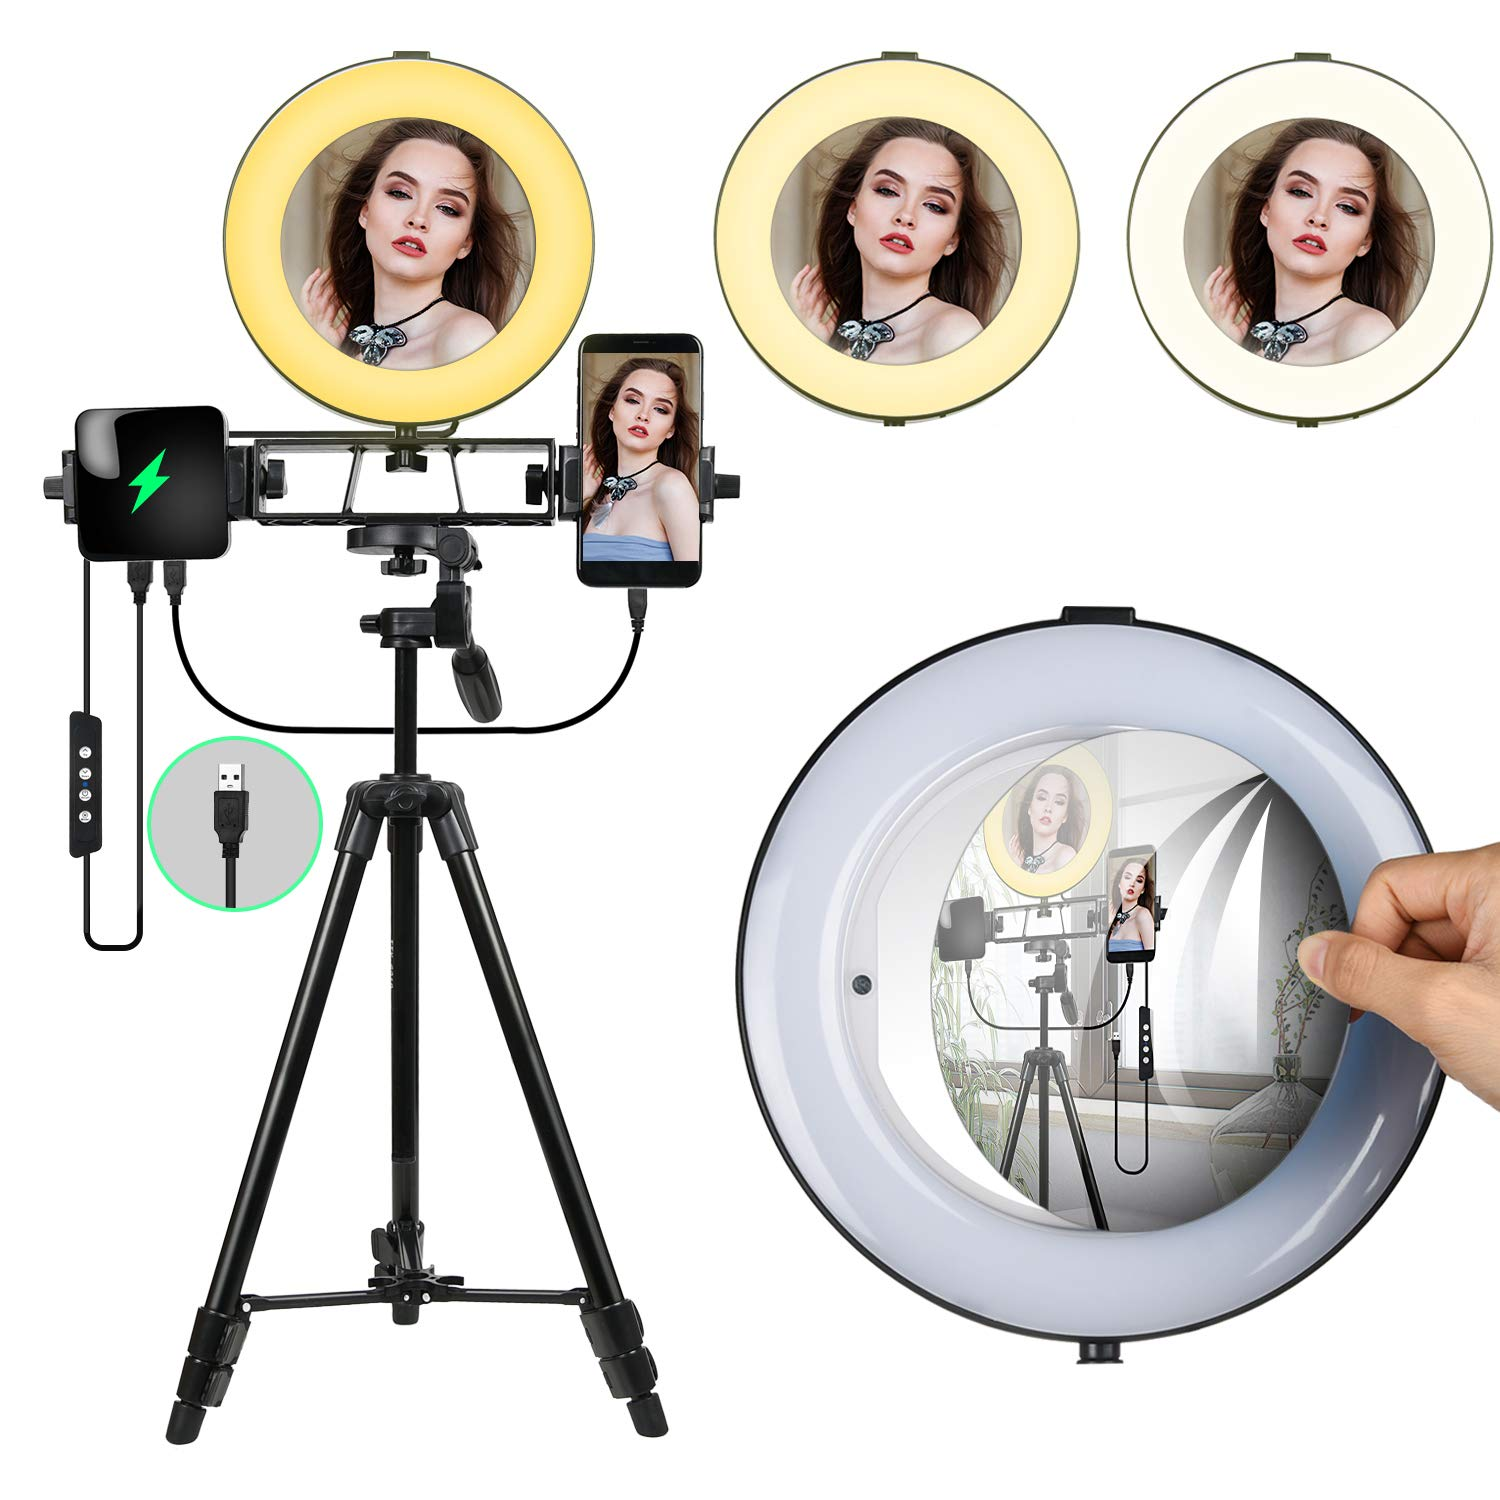 8'' Ring Light with Mirror,Dimmable Selfie LED Ring Light for Beauty, Makeup,Live Stream,YouTube Video Shooting,Photography with Adjustable Tripod Stand  and Cell Phone Holder for iPhone Android by MACTREM